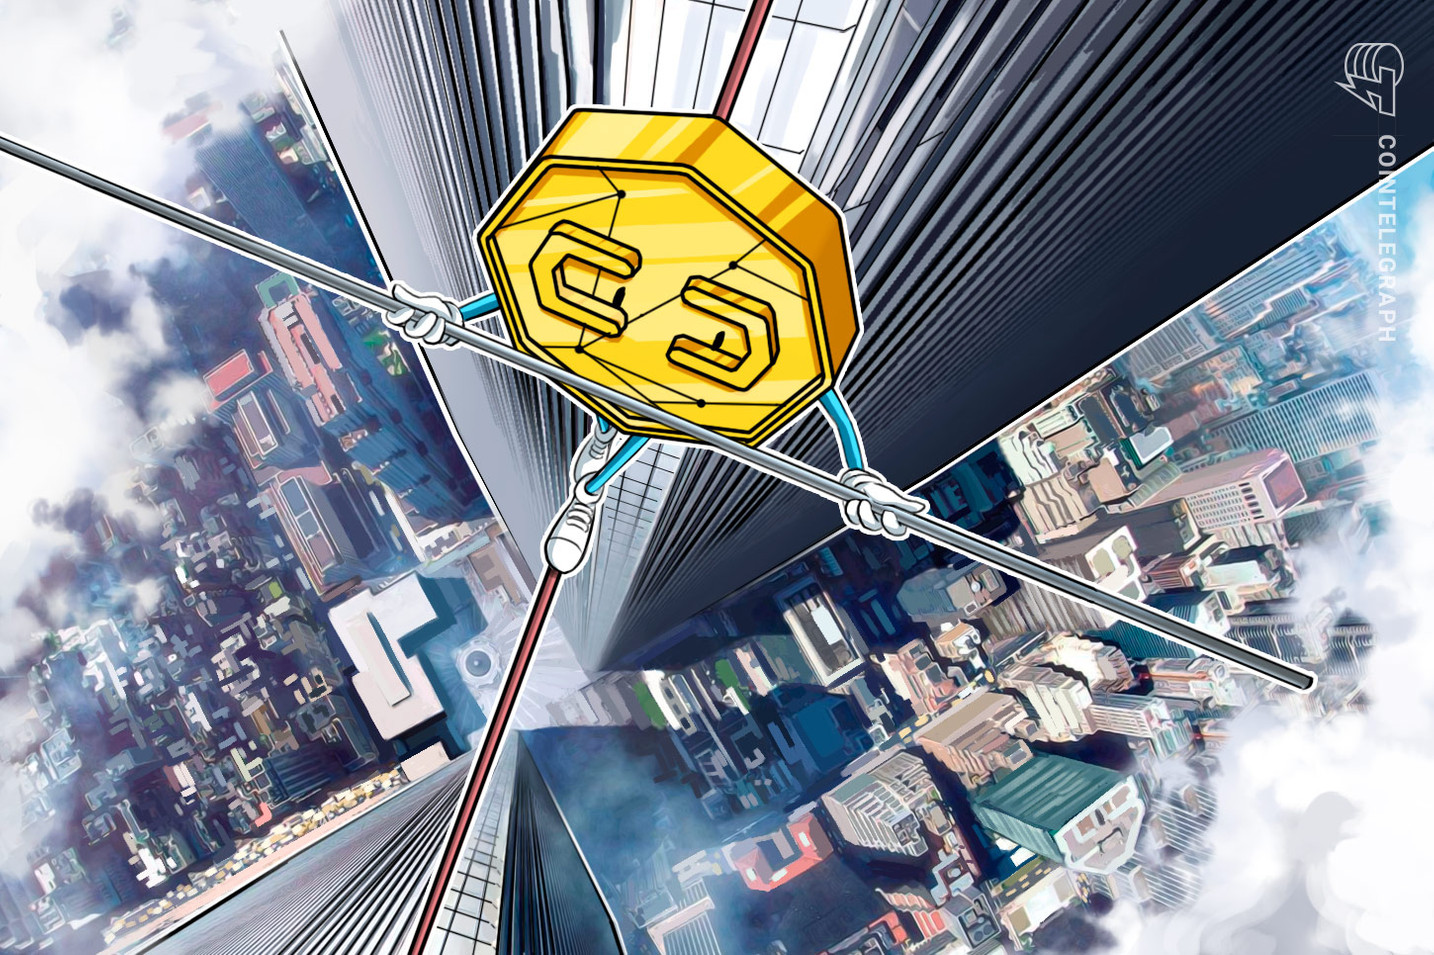 Crypto Market Keeps Its Balance After Recent Sell-Off, Bitcoin Above $6,300